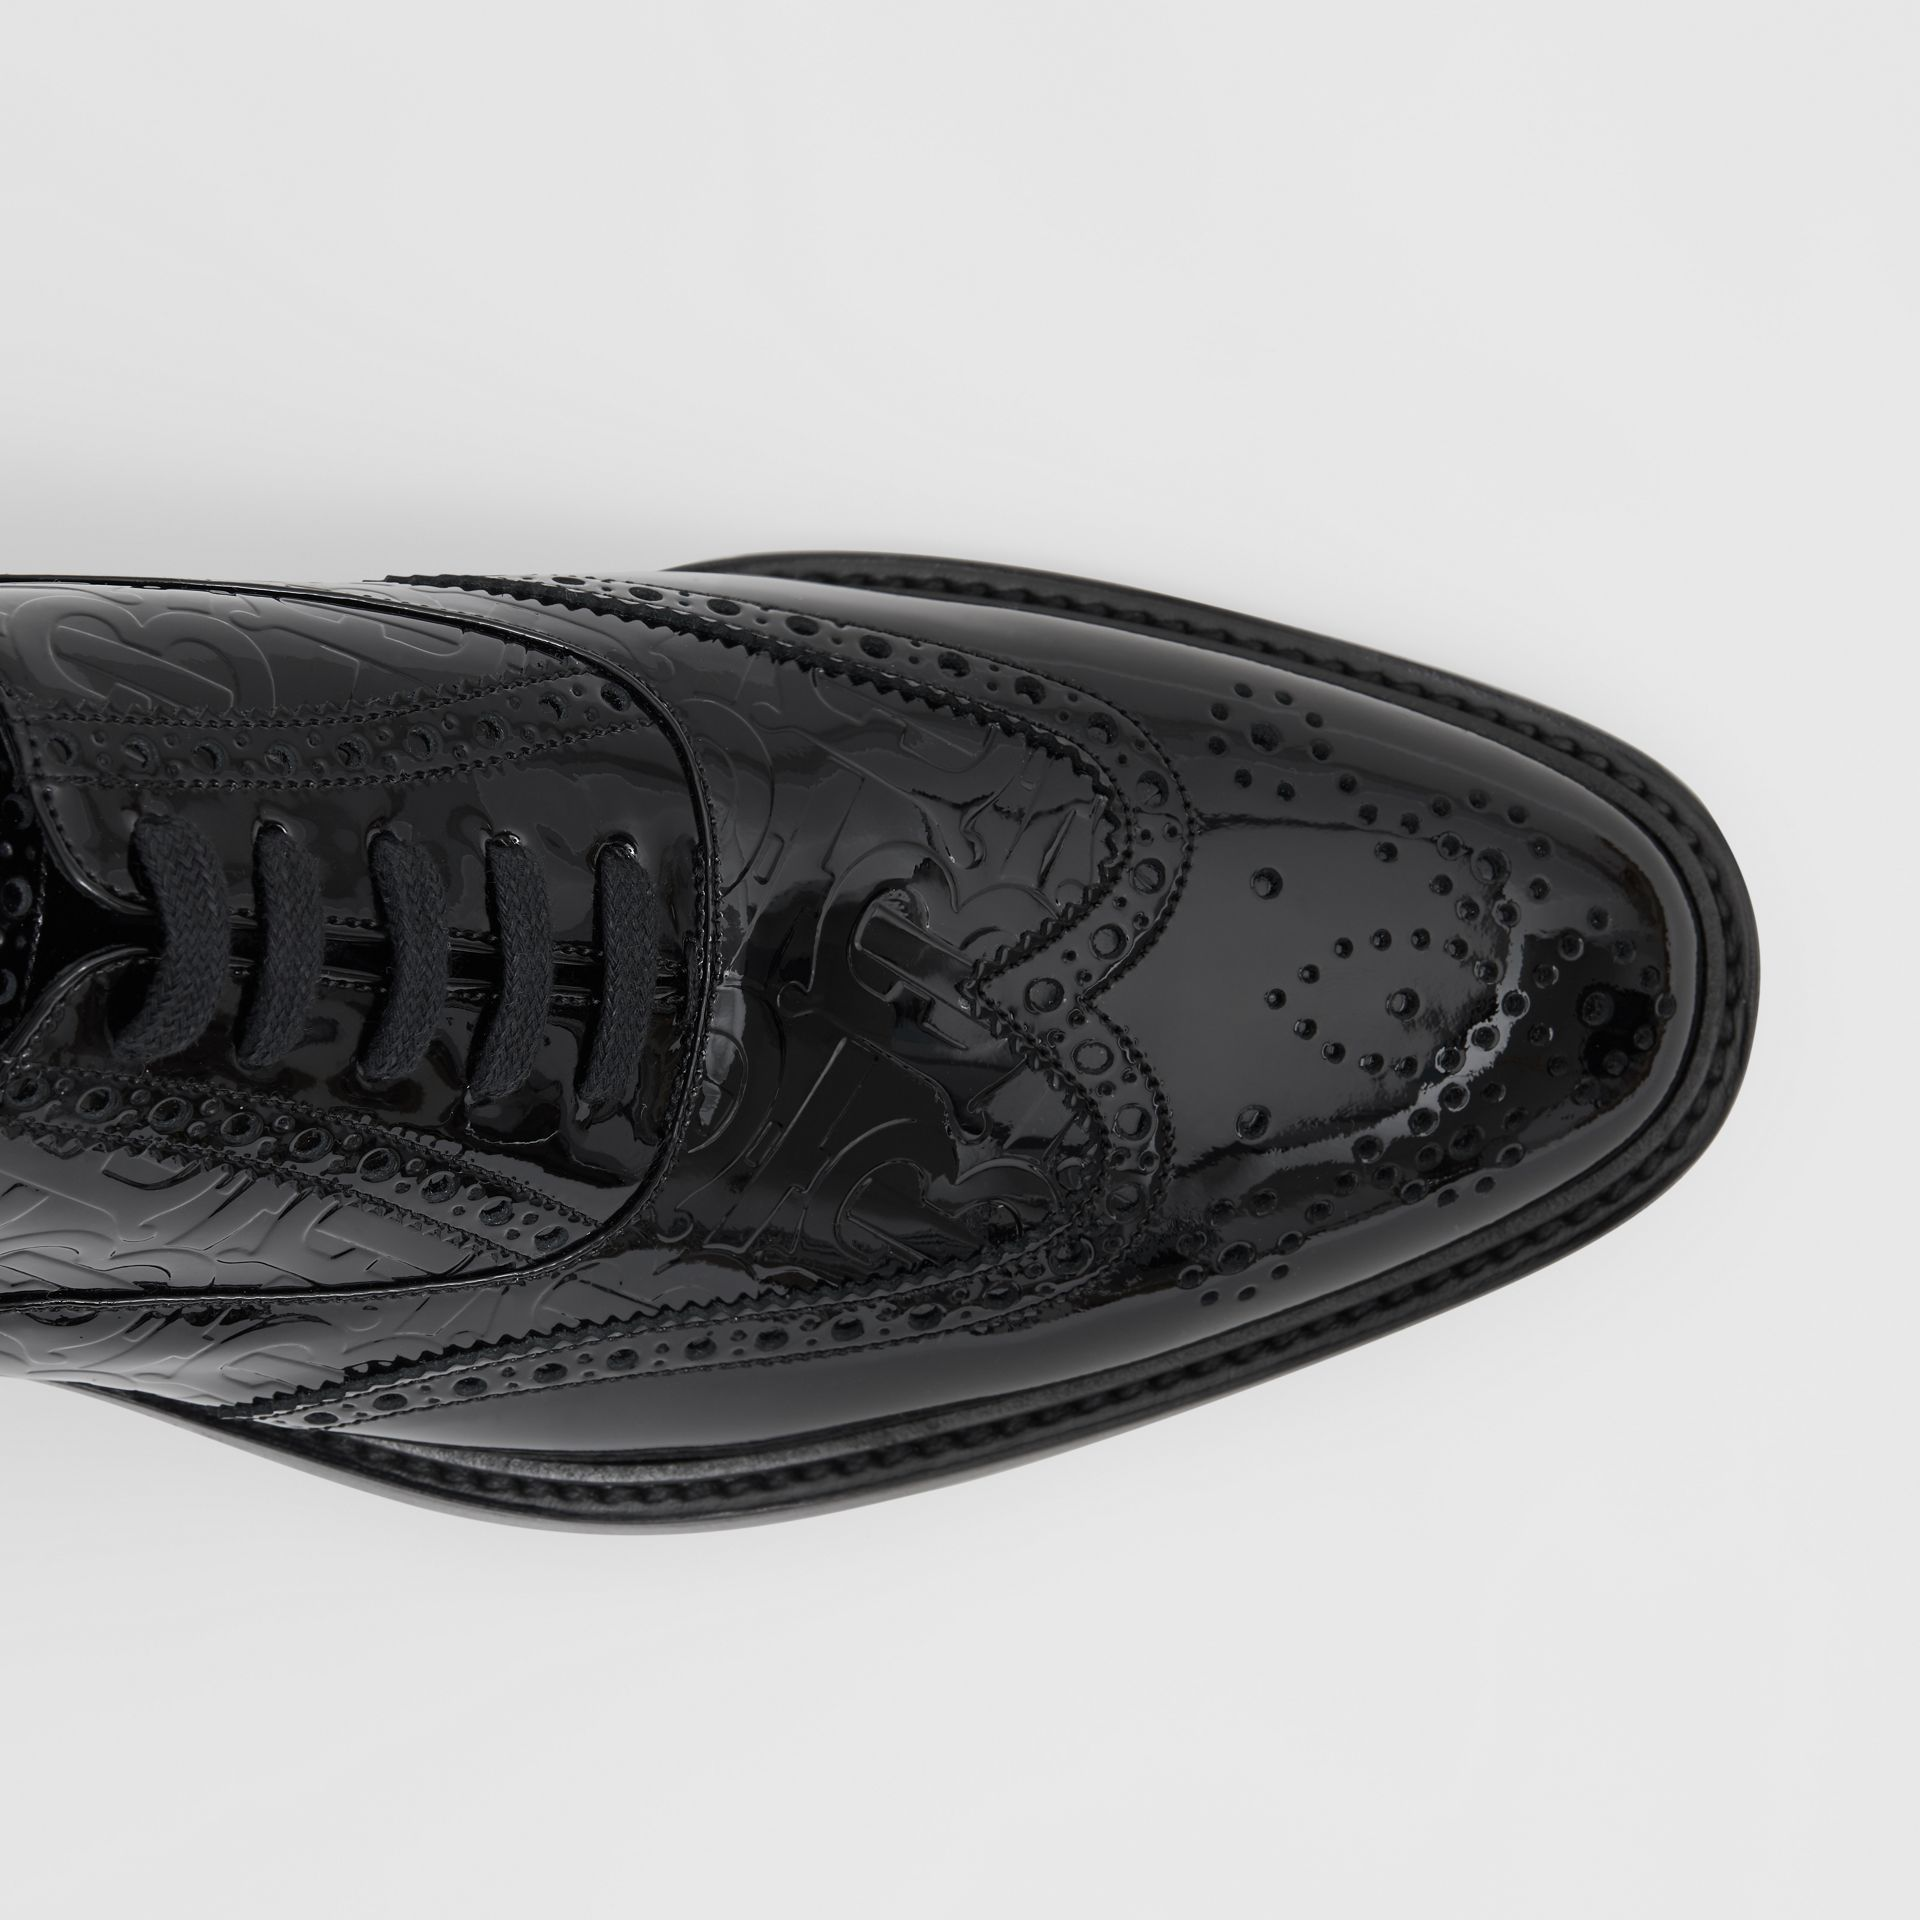 D-ring Detail Monogram Patent Leather Brogues in Black - Men | Burberry Canada - gallery image 1